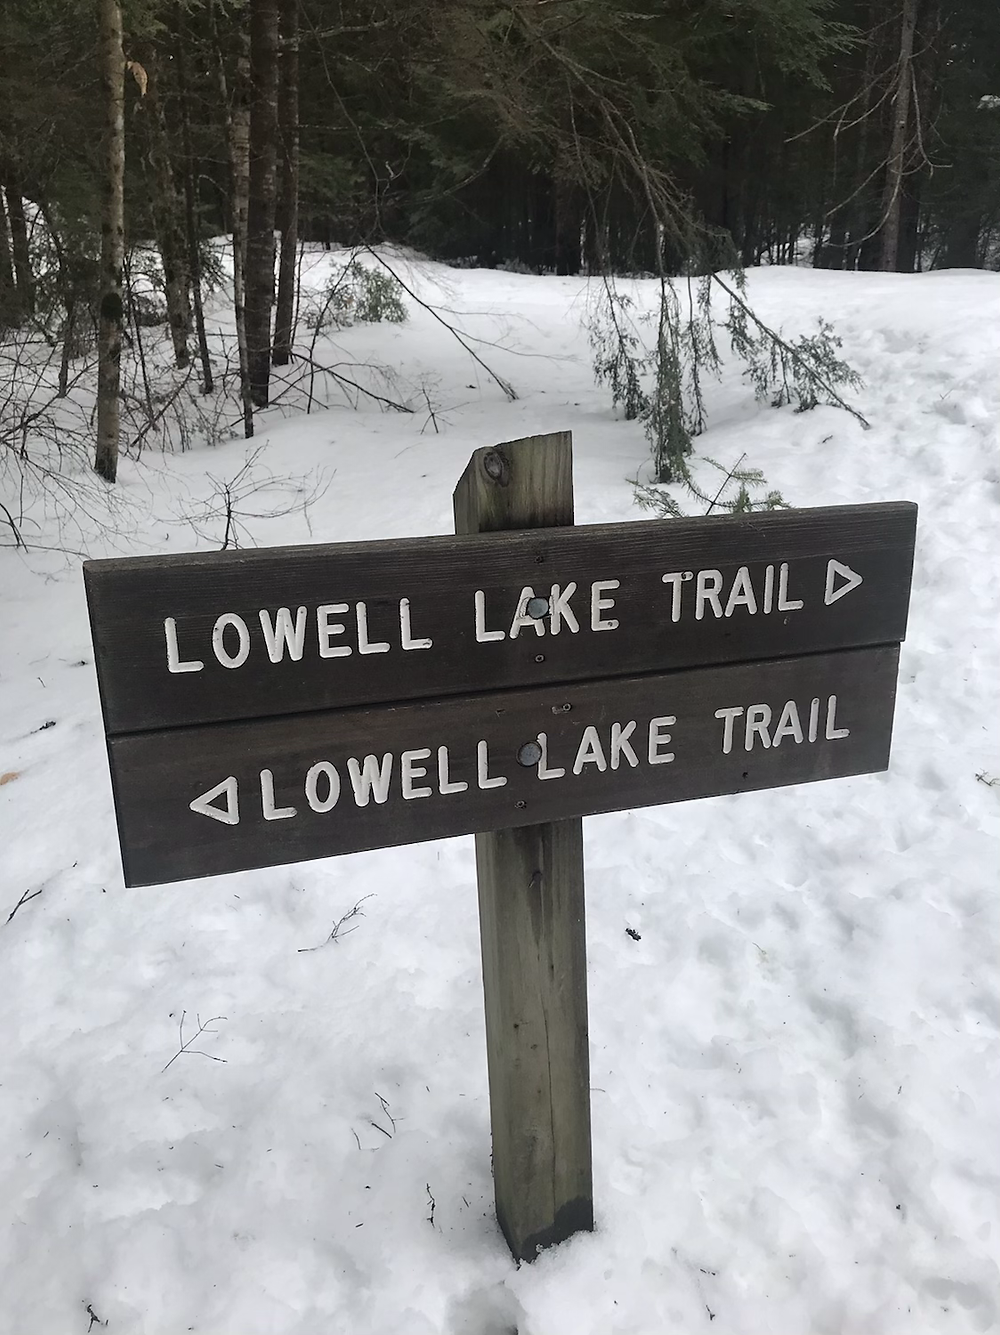 Sign for Lowell Lake Trail